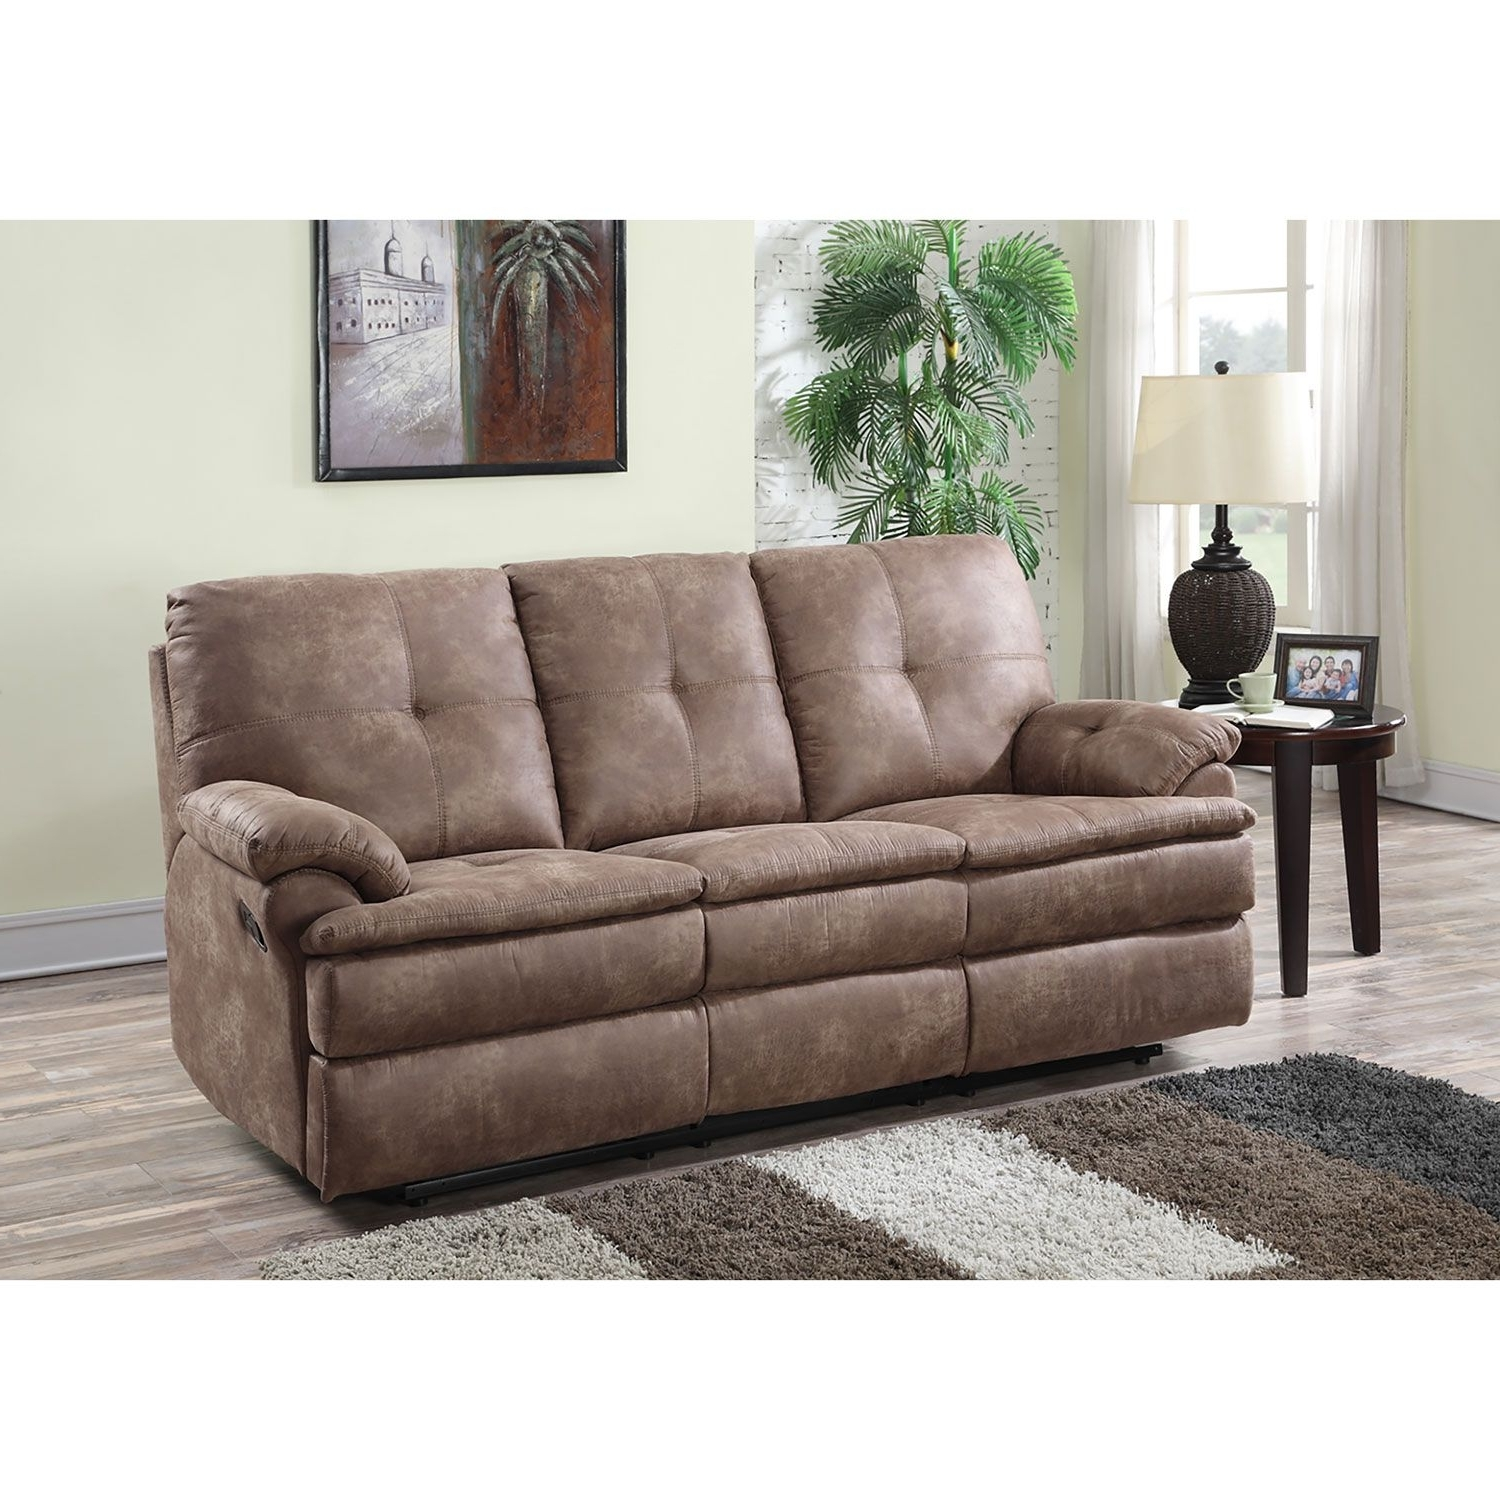 Well Liked Sectional Sofas At Sam's Club Inside Sofa : Two Seater Fabric Recliner Sofa Fabric Reclining Sofa And (View 19 of 20)